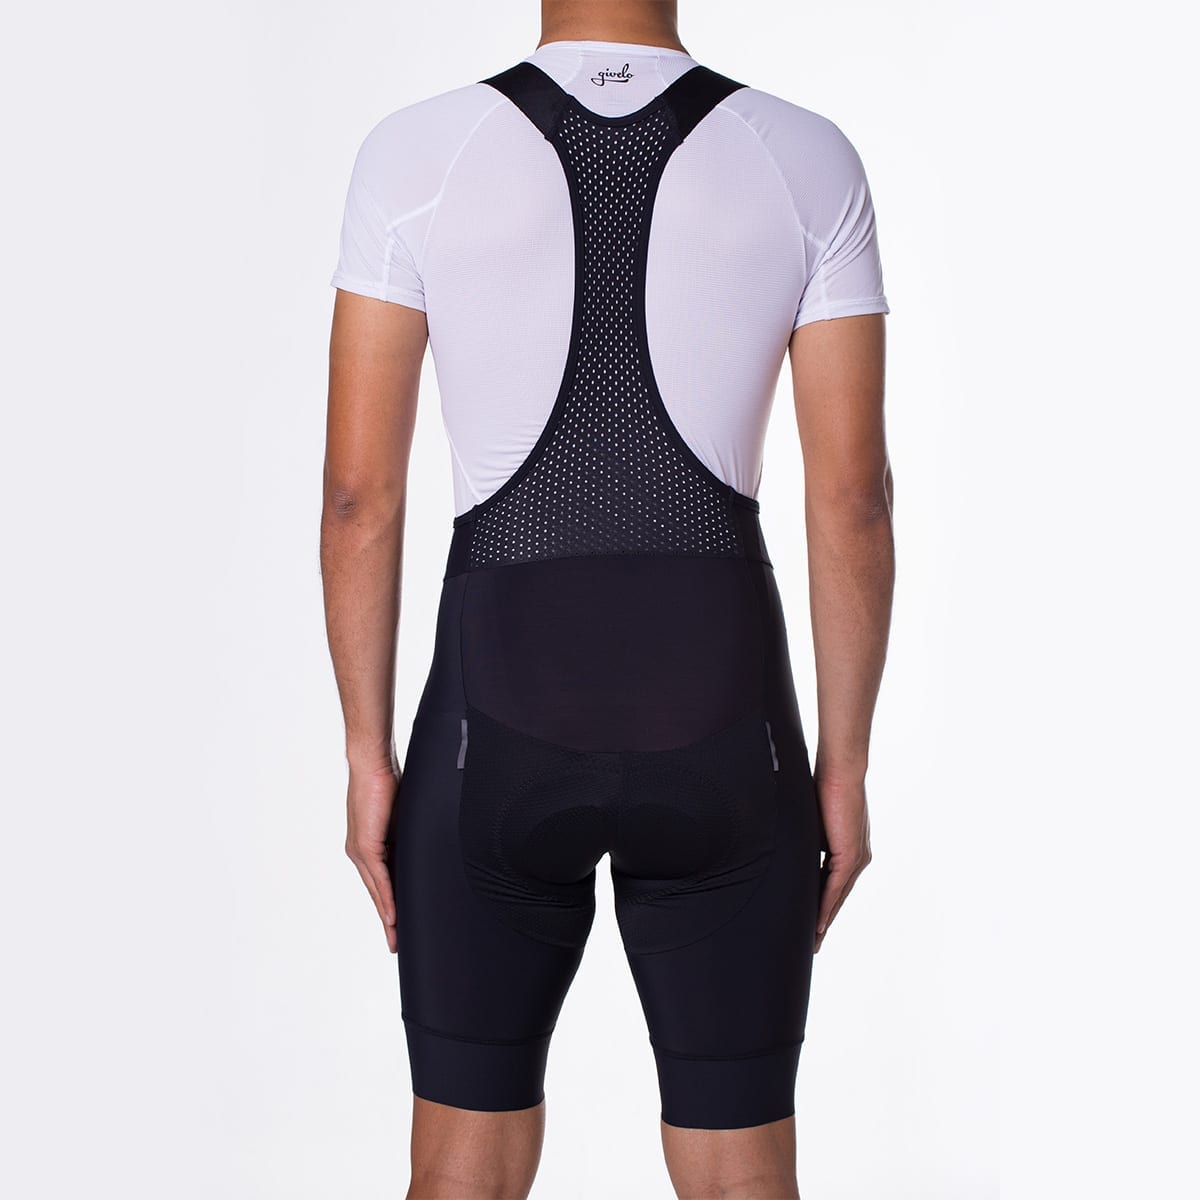 givelo | T-Shirt Base Layer - White